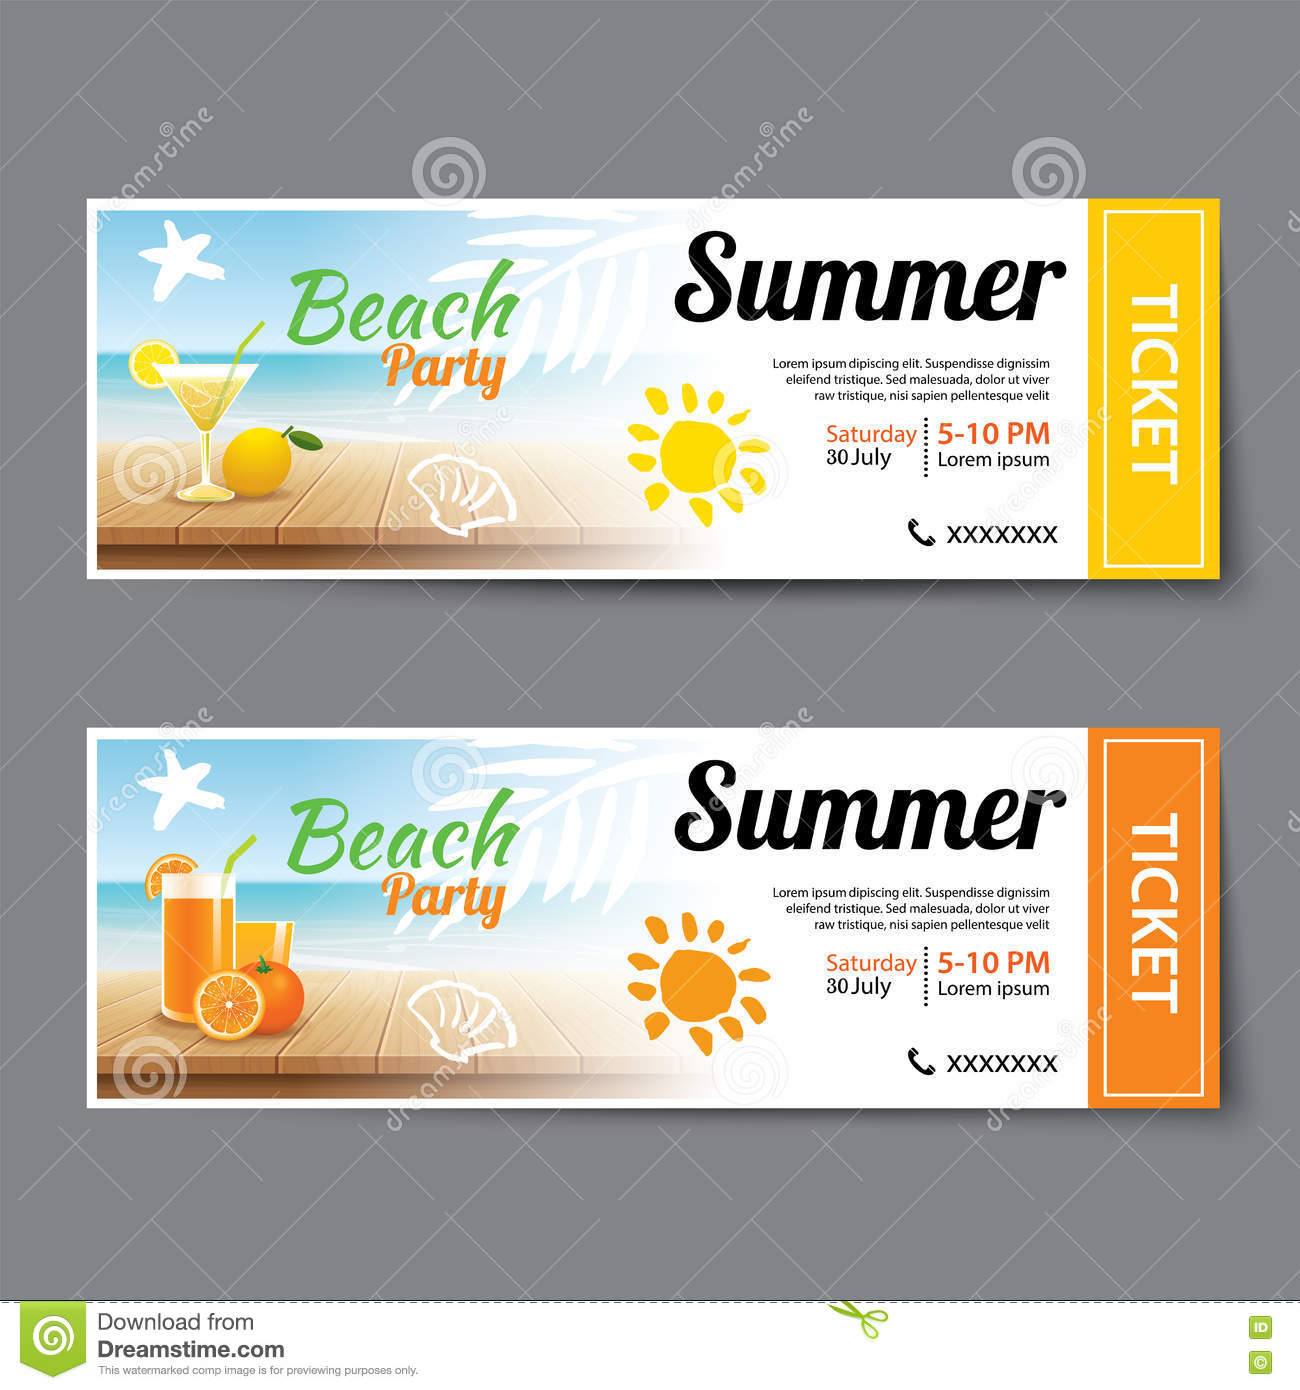 Party Tickets Templates. Tickets Template Free Download Agi  Mapeadosencolombia Co . Party Tickets Templates. Christmas Party Ticket  Template Free ...  Christmas Party Ticket Template Free